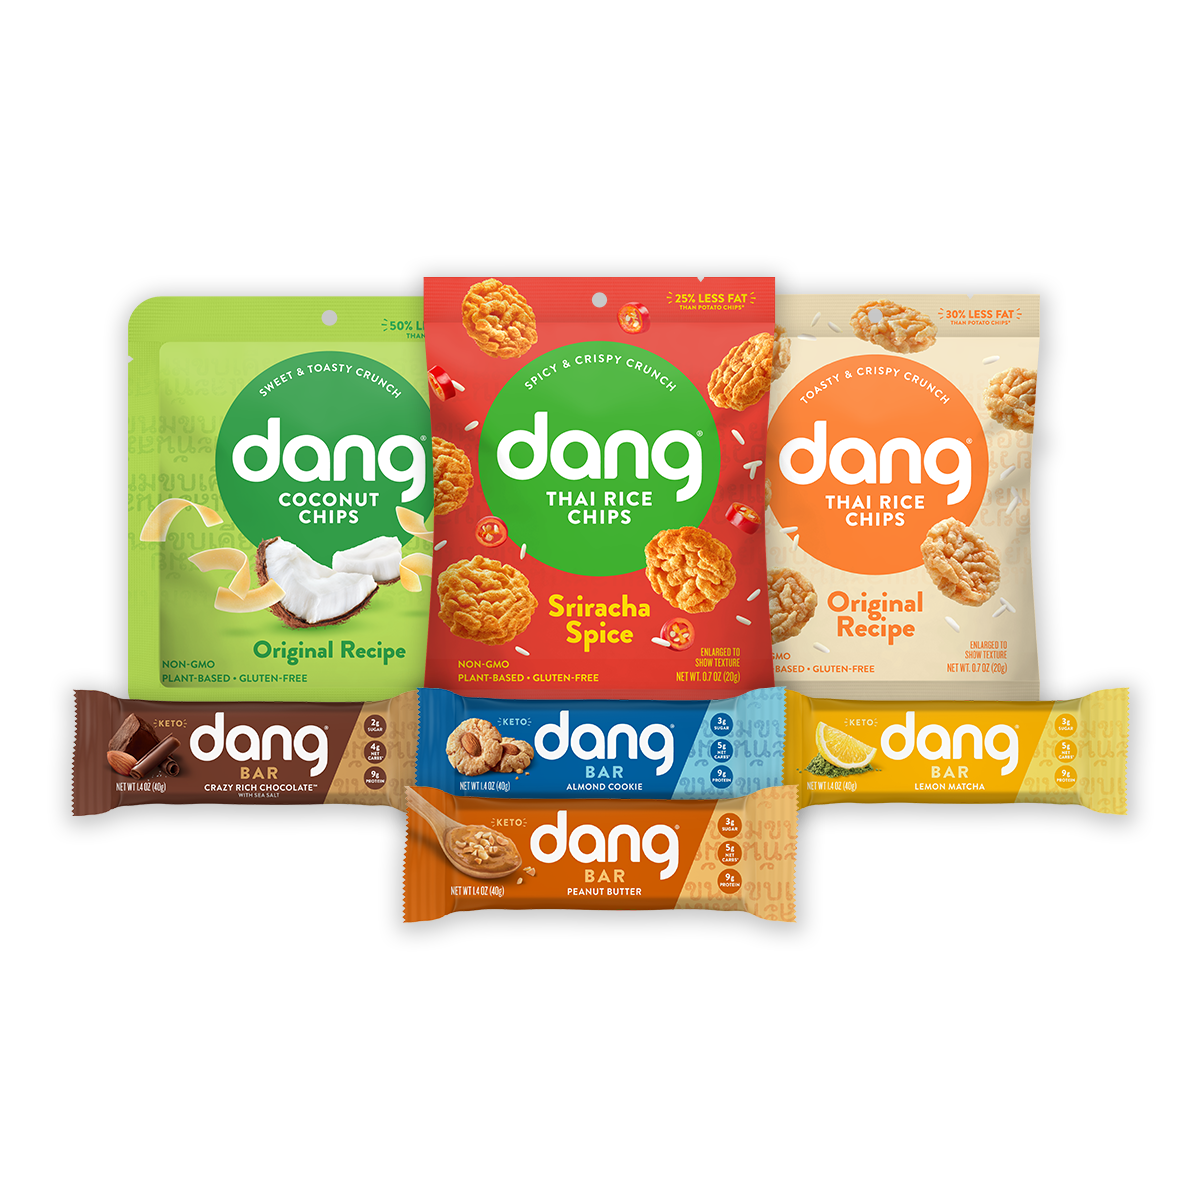 Stay-At-Home Bundle with Coconut Chips, Thai Rice Chips, Dang Bar (60 Count)